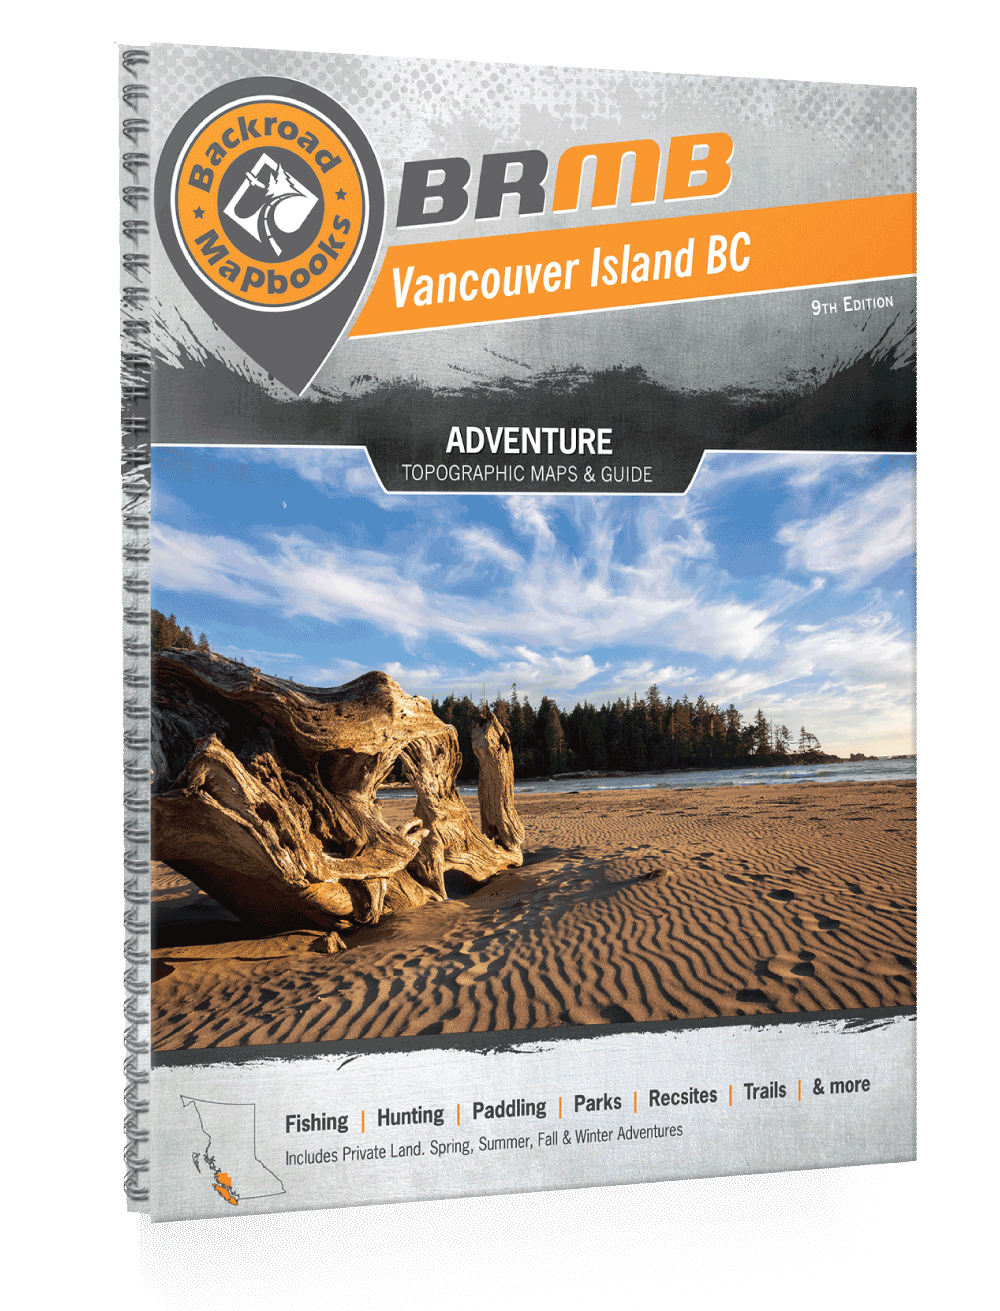 Vancouver Island BC - 5th Edition